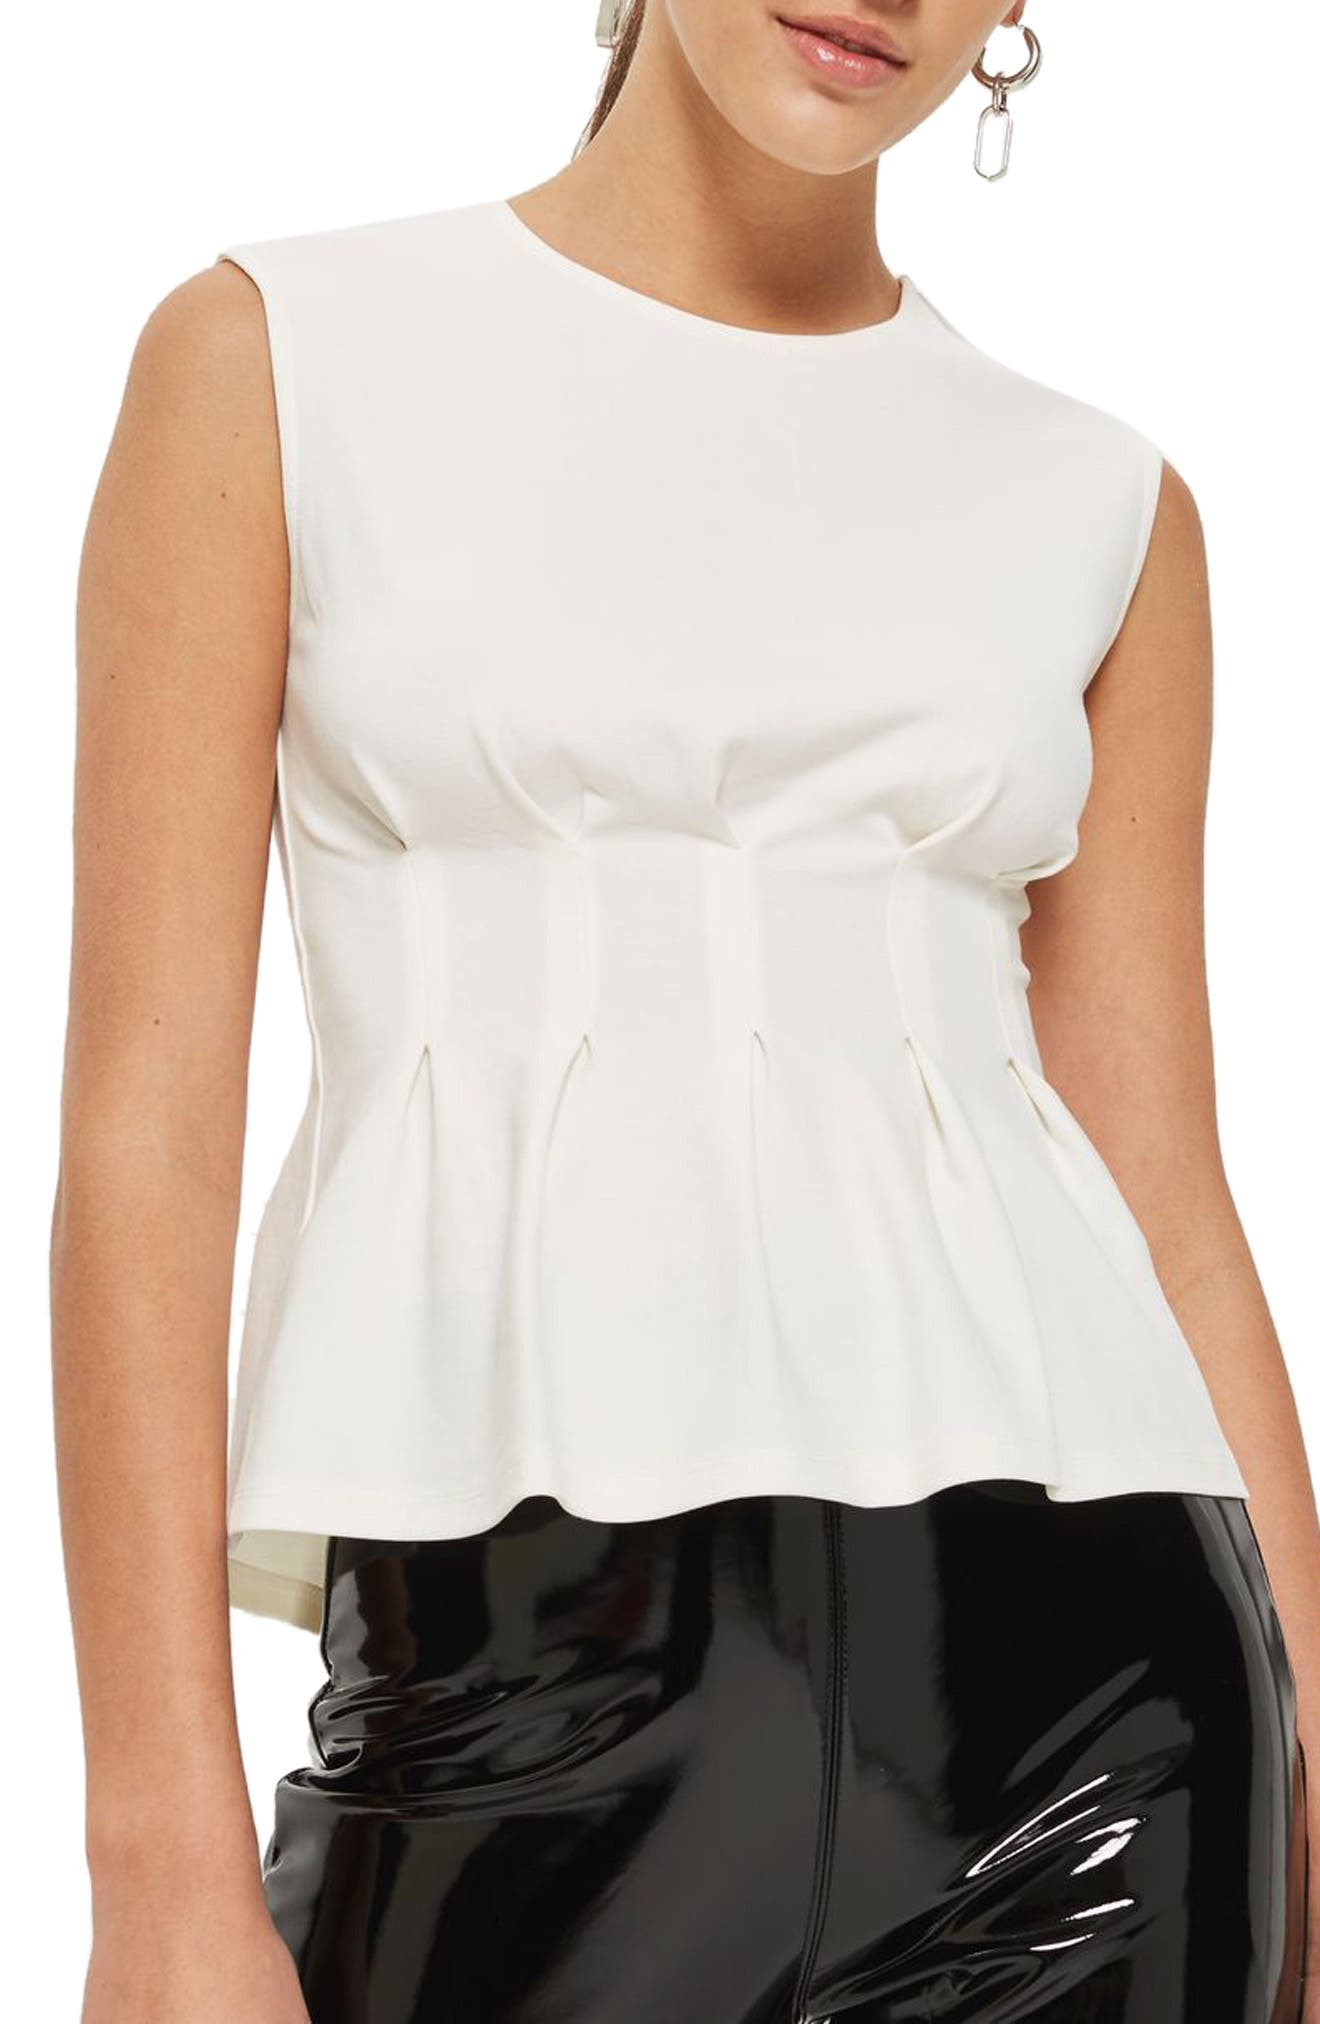 Cinched Waist Sleeveless Blouse by Topshop